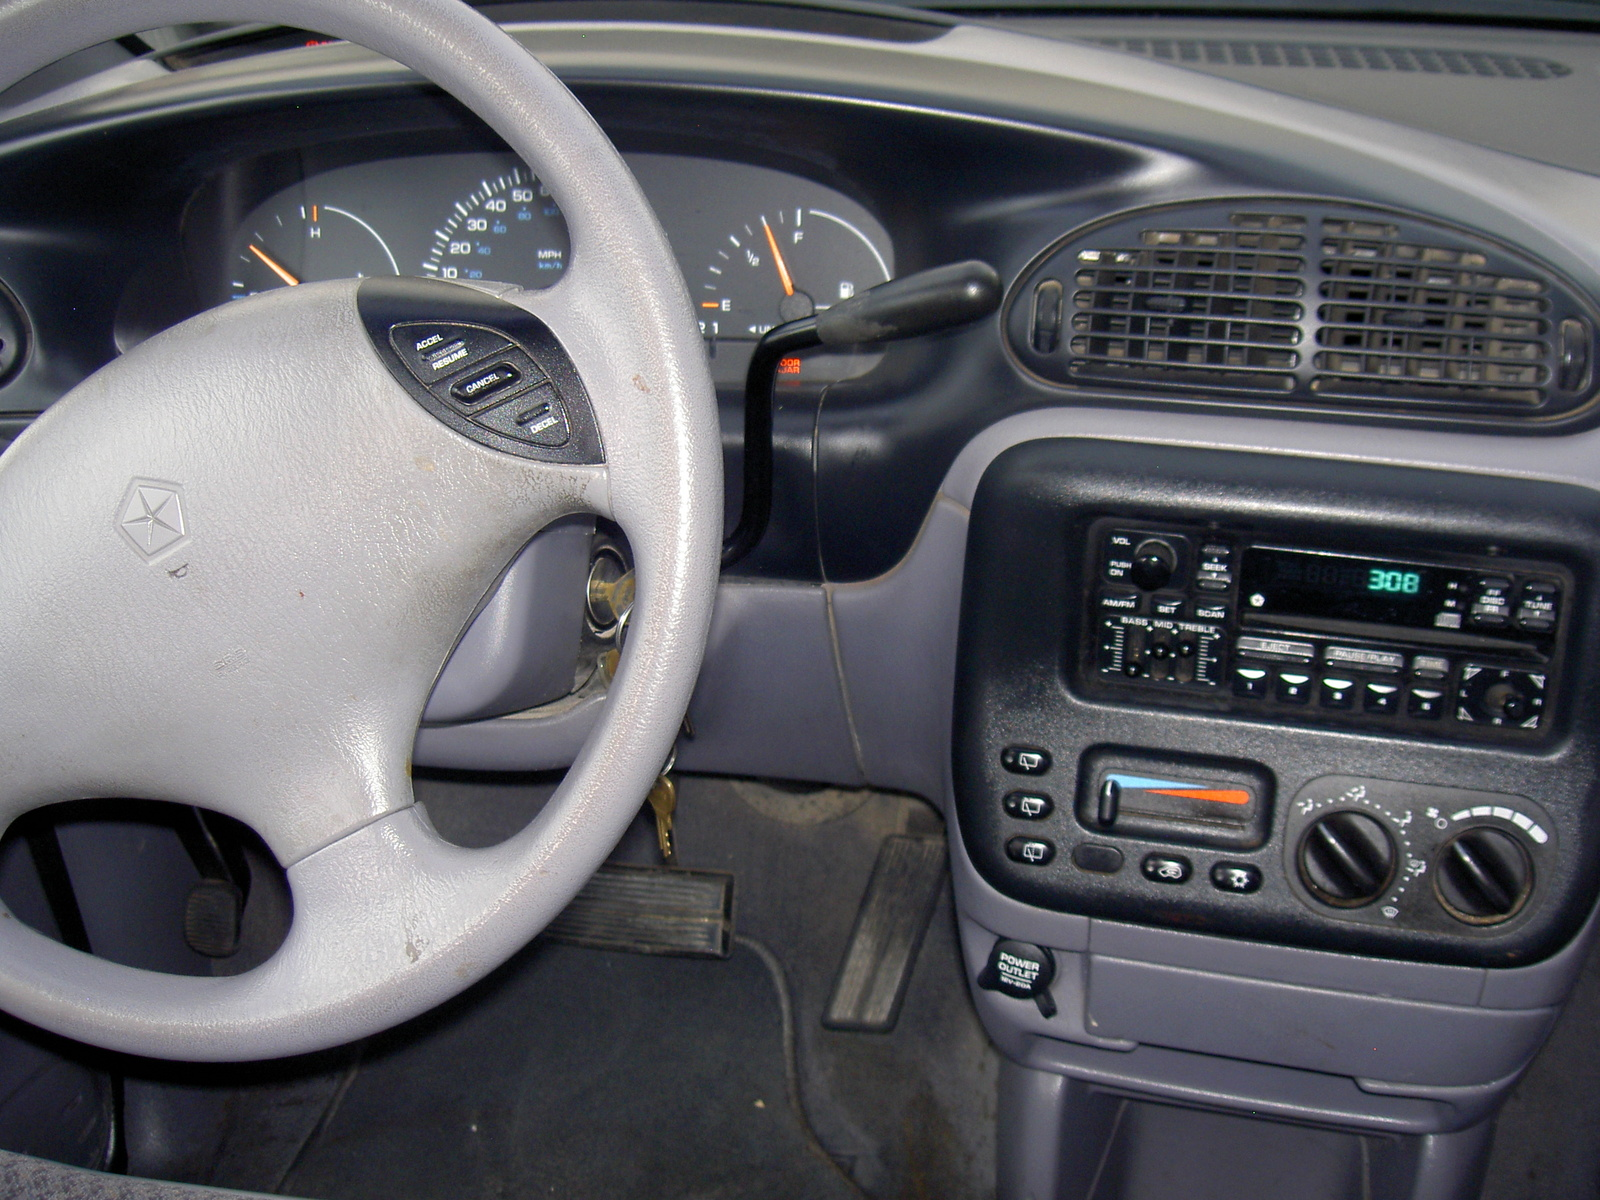 Voyager Interior Light Wiring Schematics Diagrams 1991 Plymouth Diagram 95 Jeep Grand Cherokee Amp Get Free Image Chrysler Of The Seas